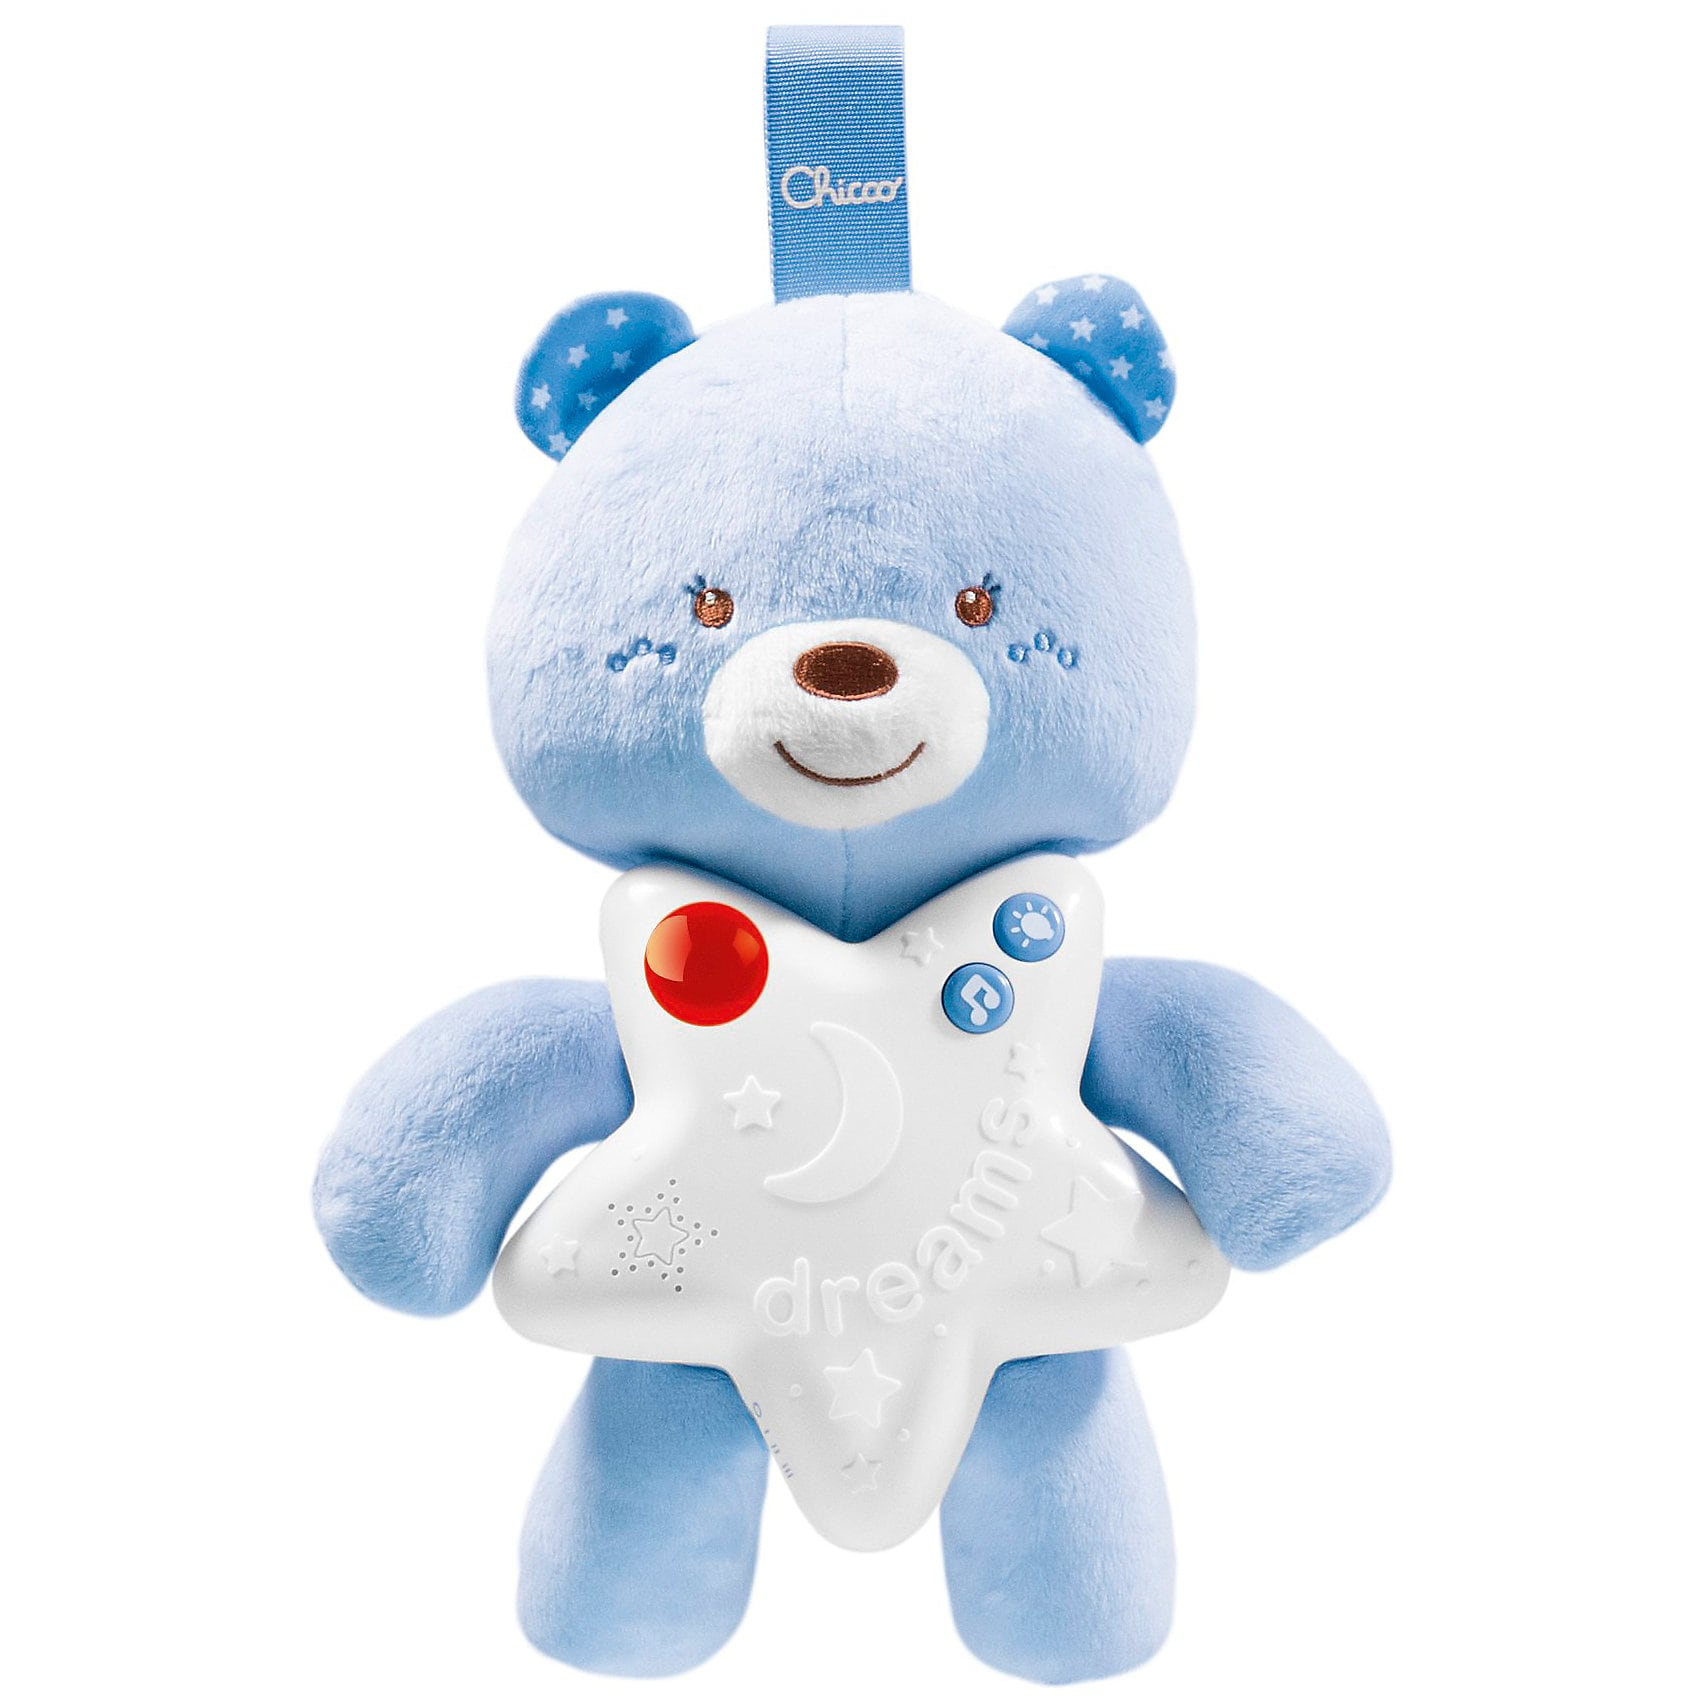 Chicco Babyphone First Dreams Goodnight Friends Boy mit Monitor